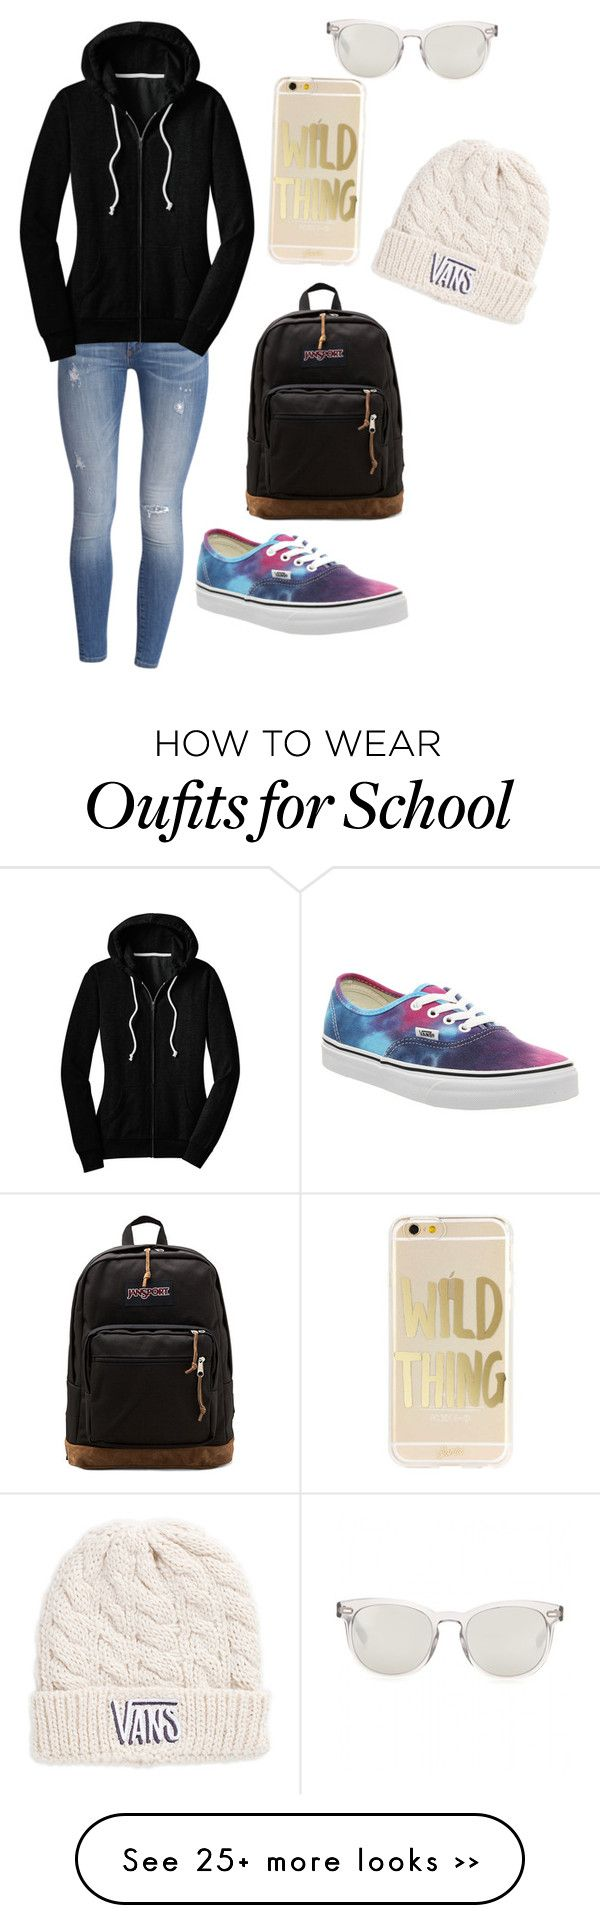 """School"" by carolinereynolds532 on Polyvore"